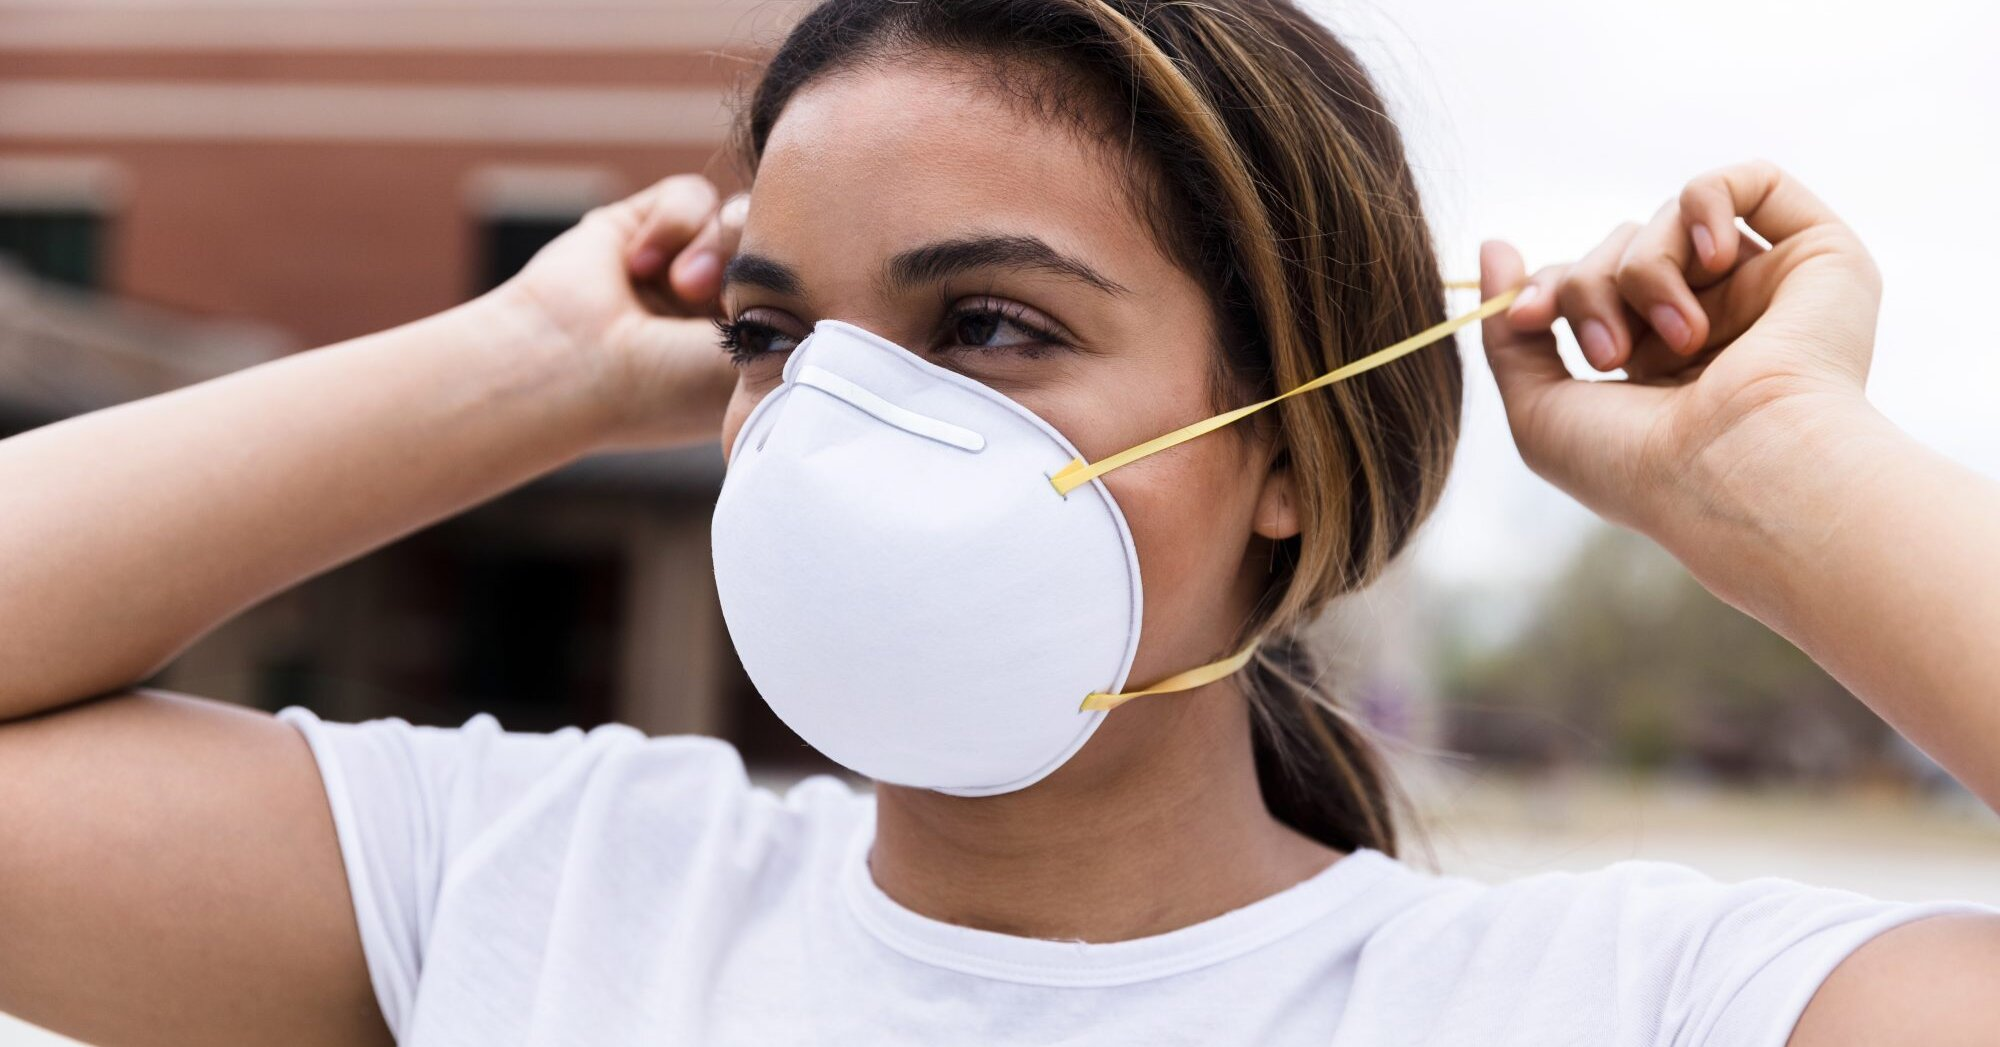 What's the Difference Between an N95 and KN95 Respirator?